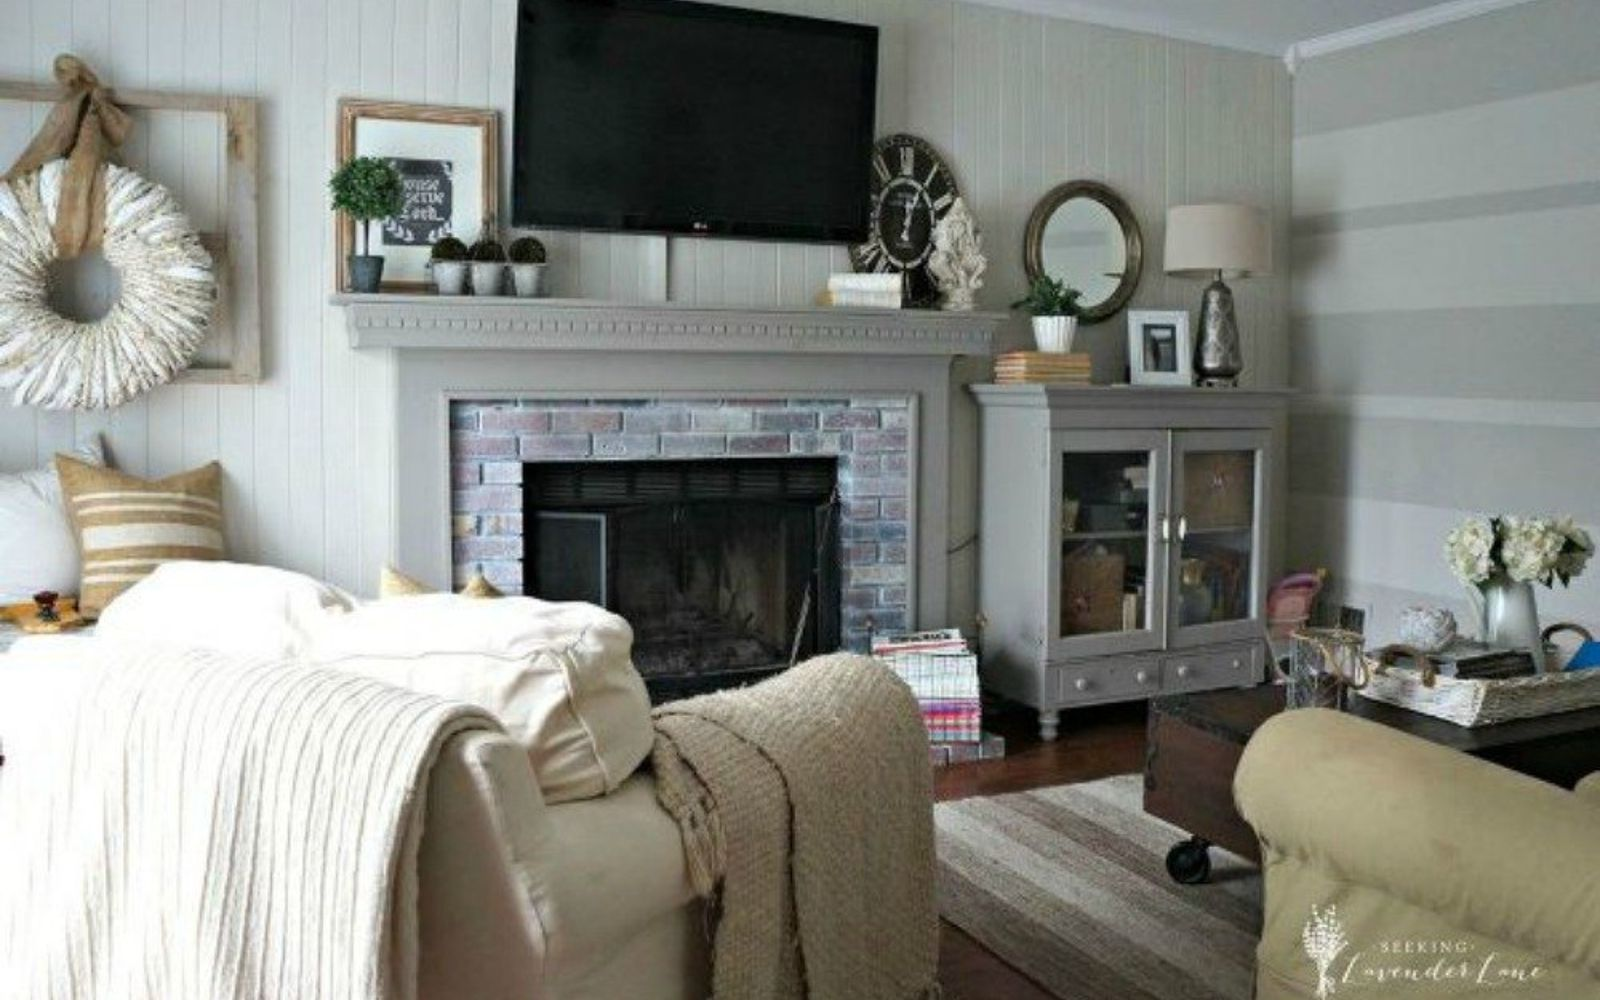 s why everyone is freaking out over these country cottage rooms, bedroom ideas, entertainment rec rooms, home decor, This family room blends modern with country